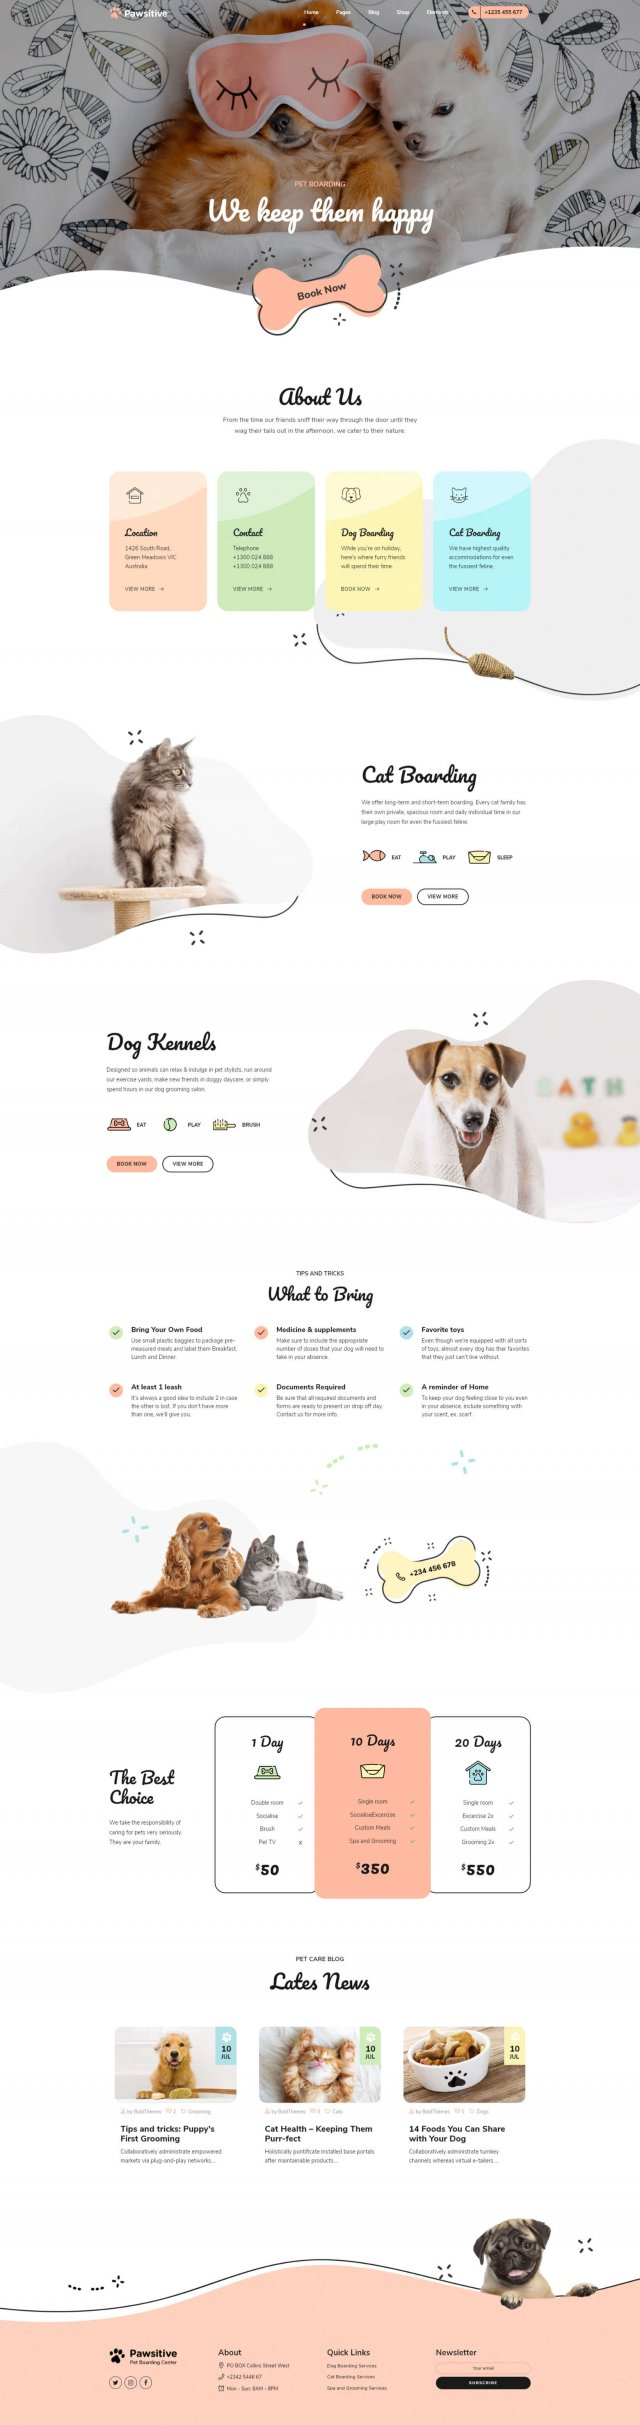 http://pawsitive.bold-themes.com/wp-content/uploads/2019/09/Coco-Home-01-640x2425.jpg